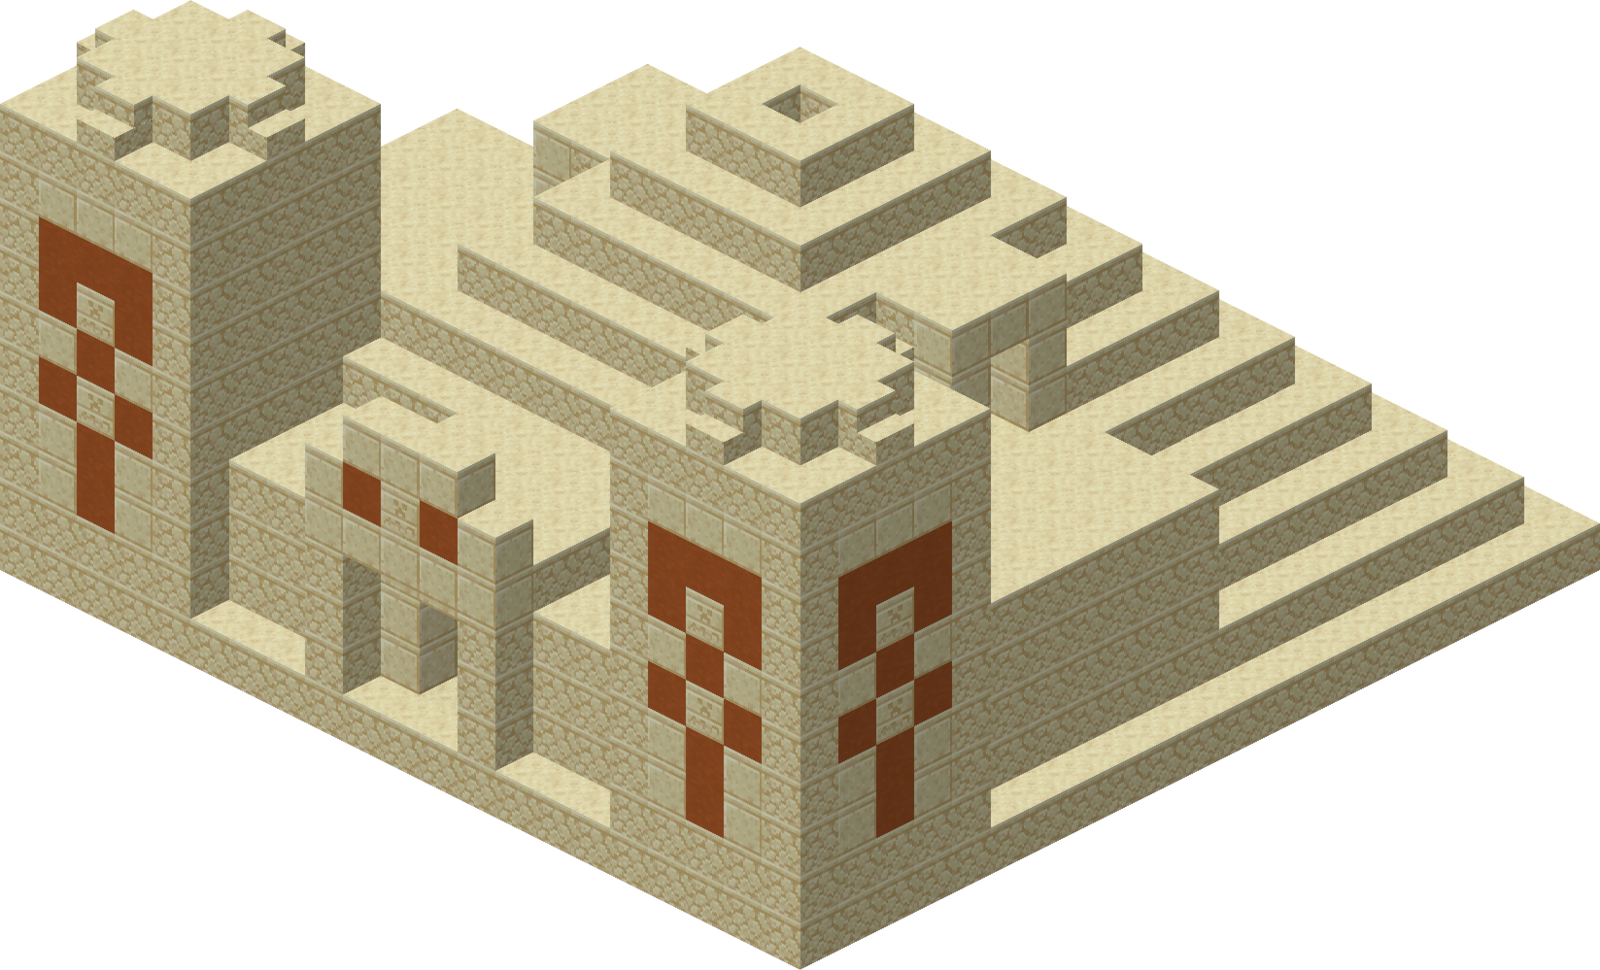 DesertTempleMinecraft